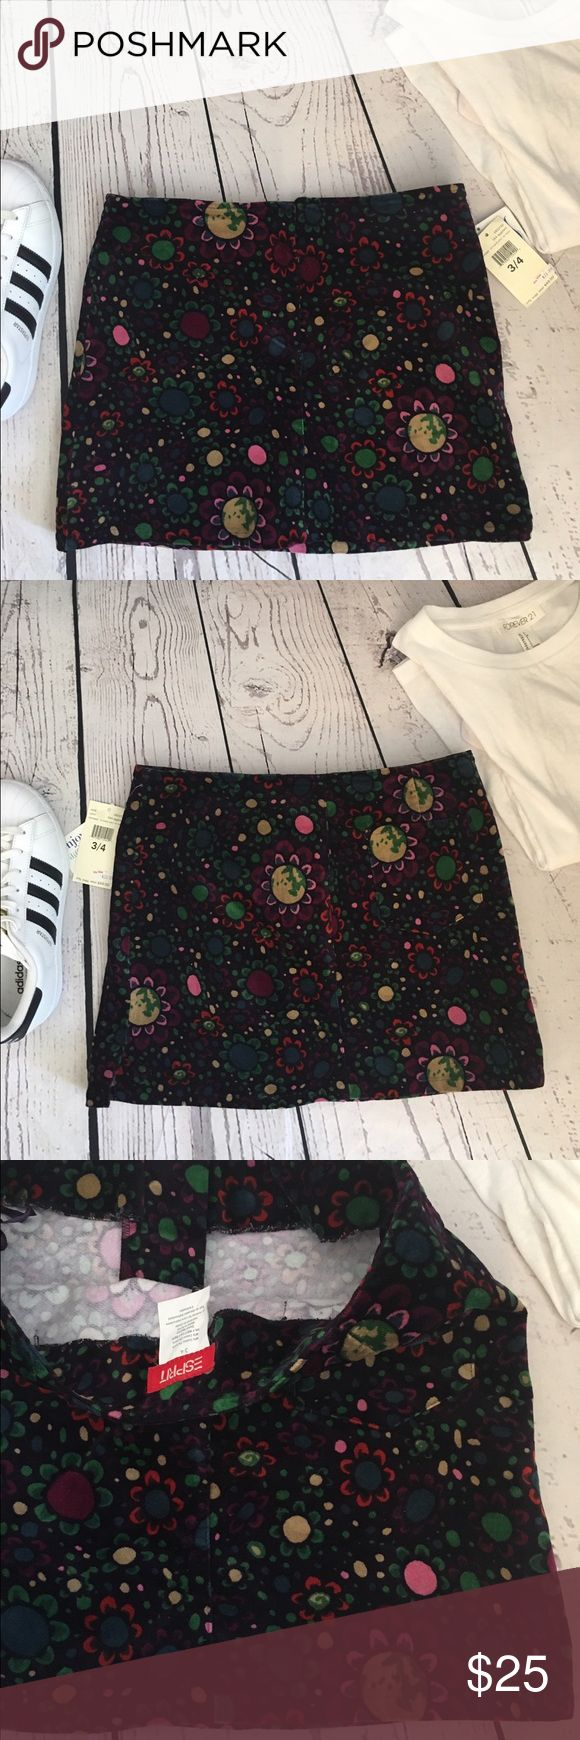 NWT velvet floral mini skirt New with tags. %98 cotton %2 Lycra. It's stretchy so could fit sizes 4-5-6 perfectly. Brand esprit from asos. Firm price ASOS Skirts Mini